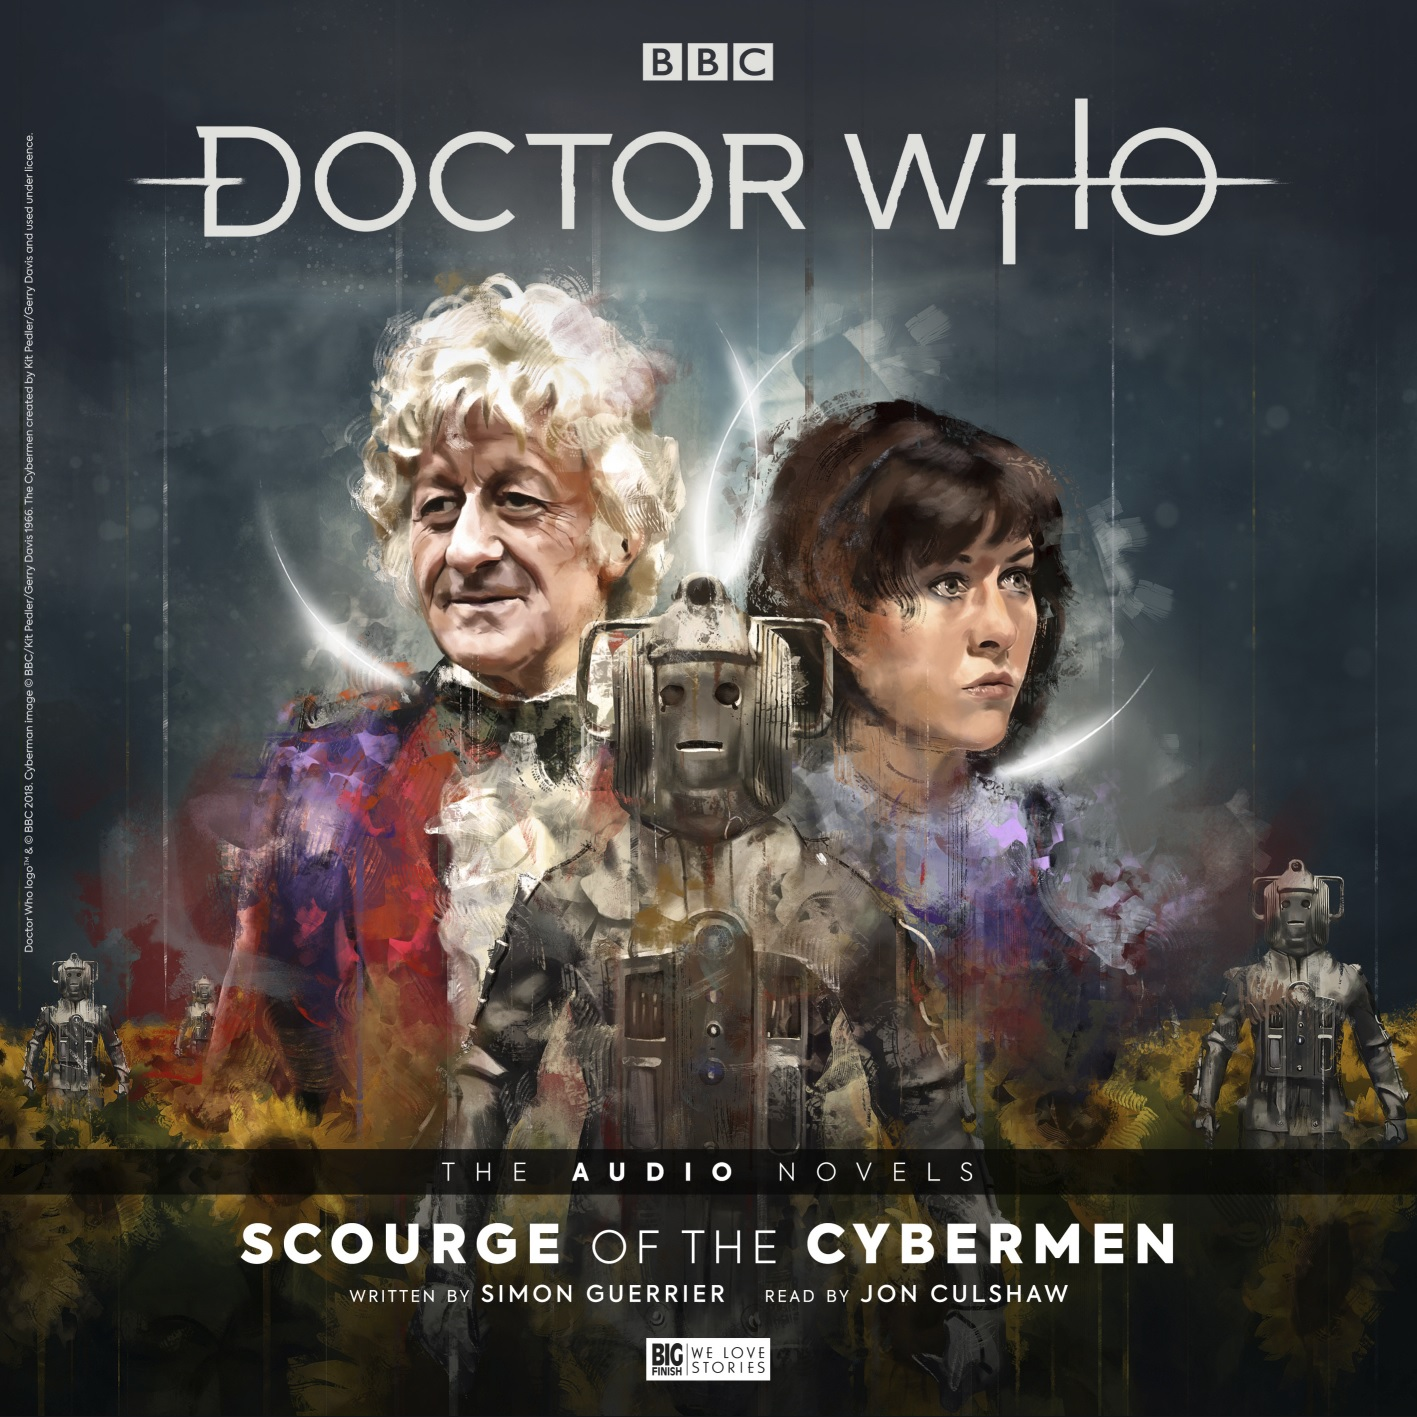 Coming Soon: Doctor Who The Audio Novels Range Begins with Scourge of the Cybermen